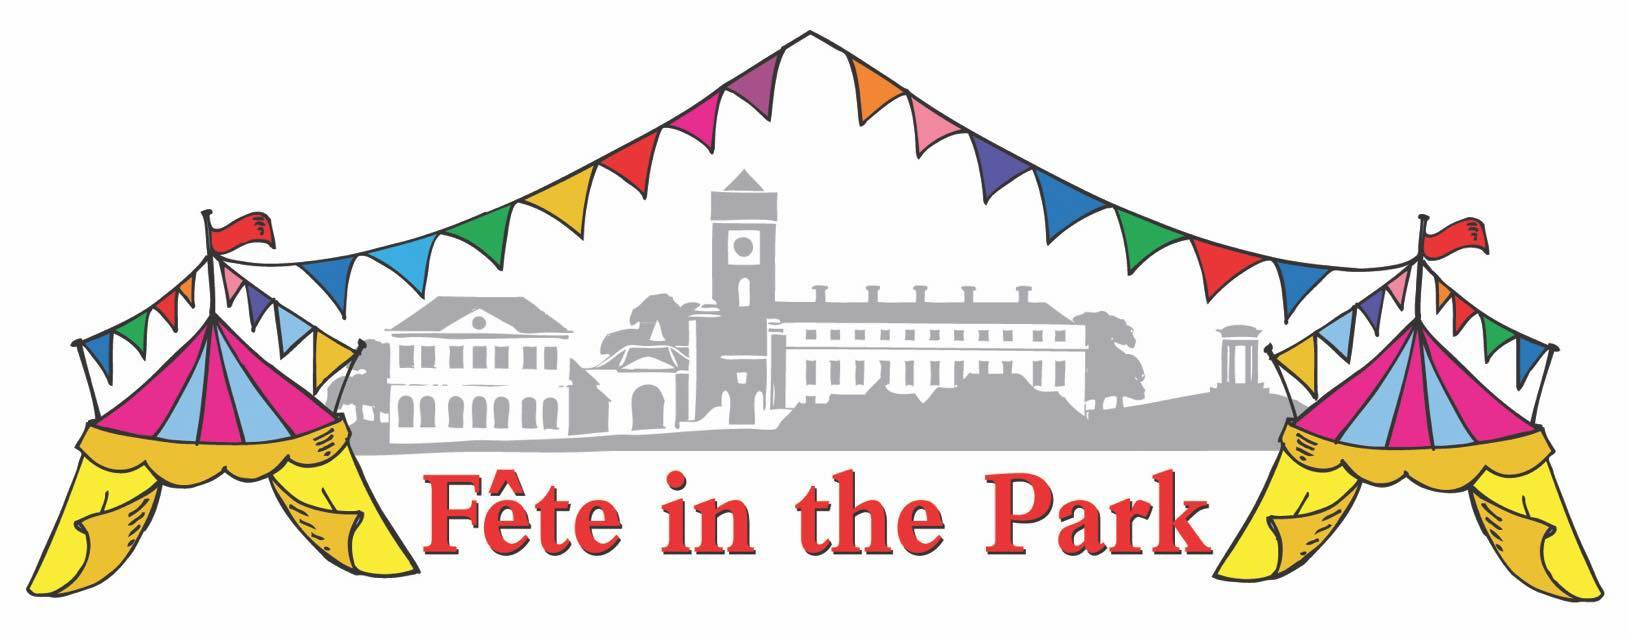 Fete in the Park